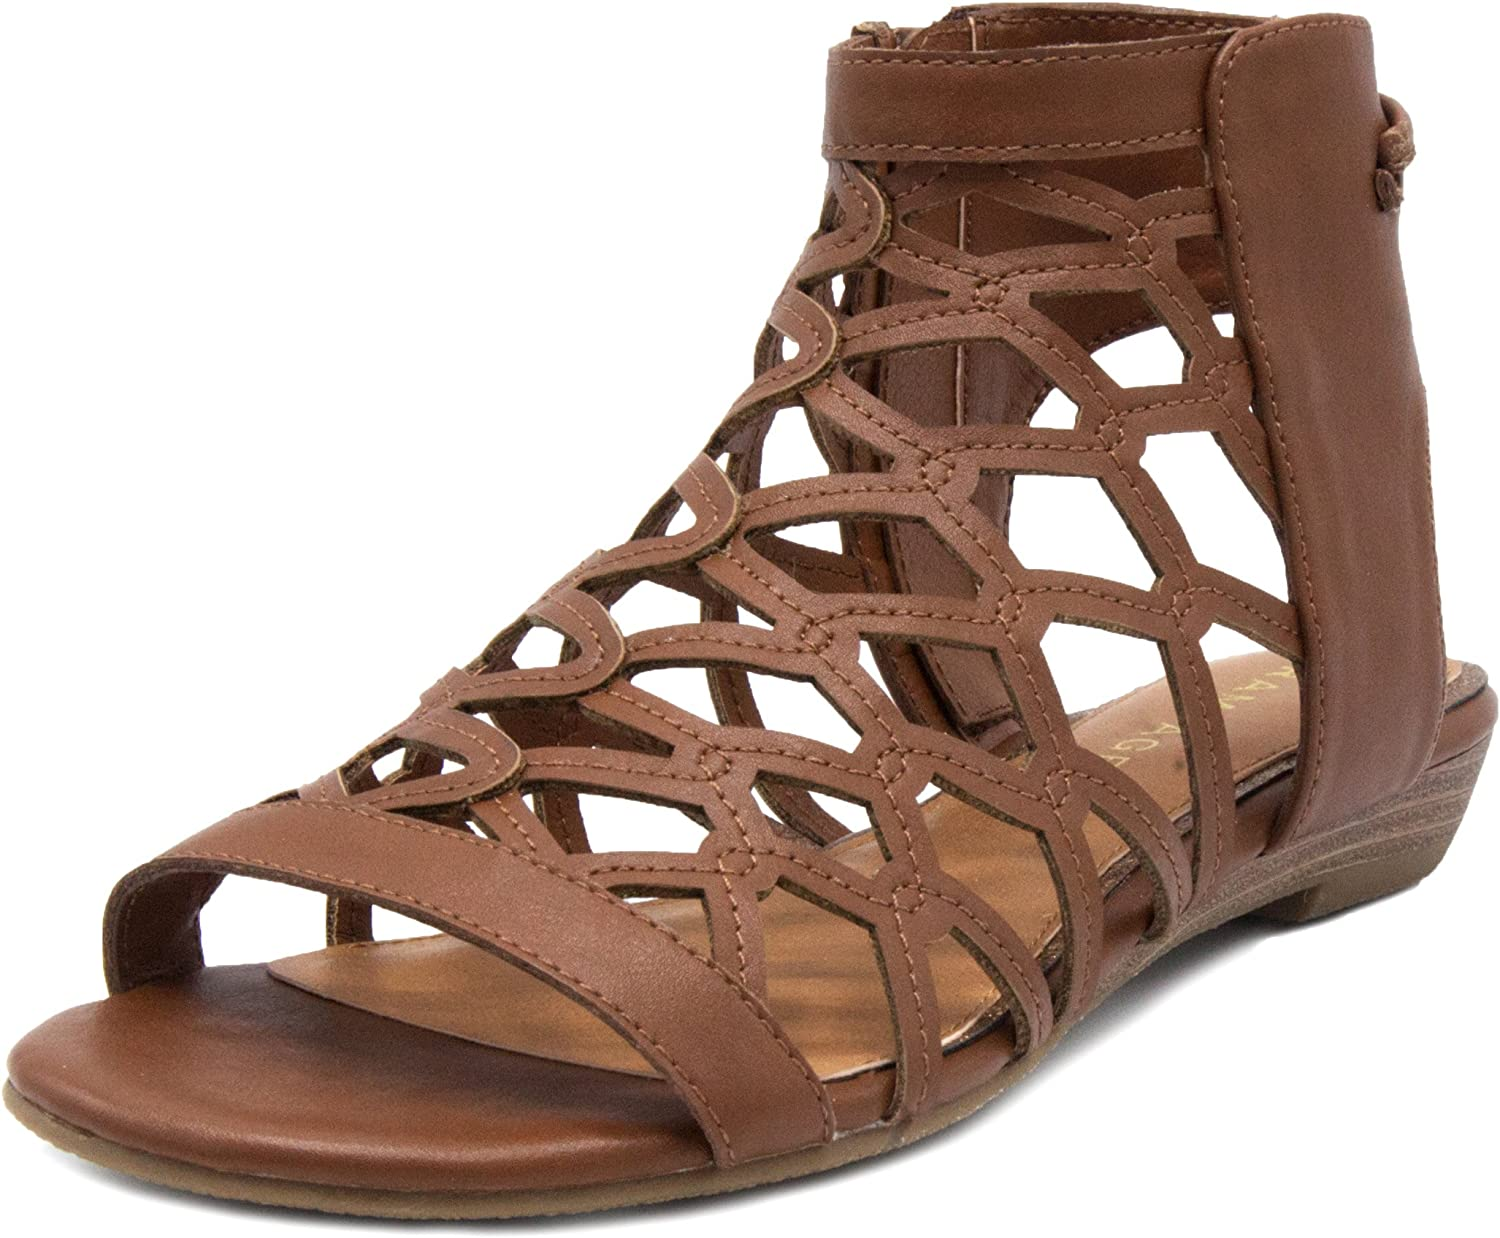 Rampage Women's Savanna Demi Wedge with Honeycomb Cutouts and Zip Up Ankle High Gladiator Sandal